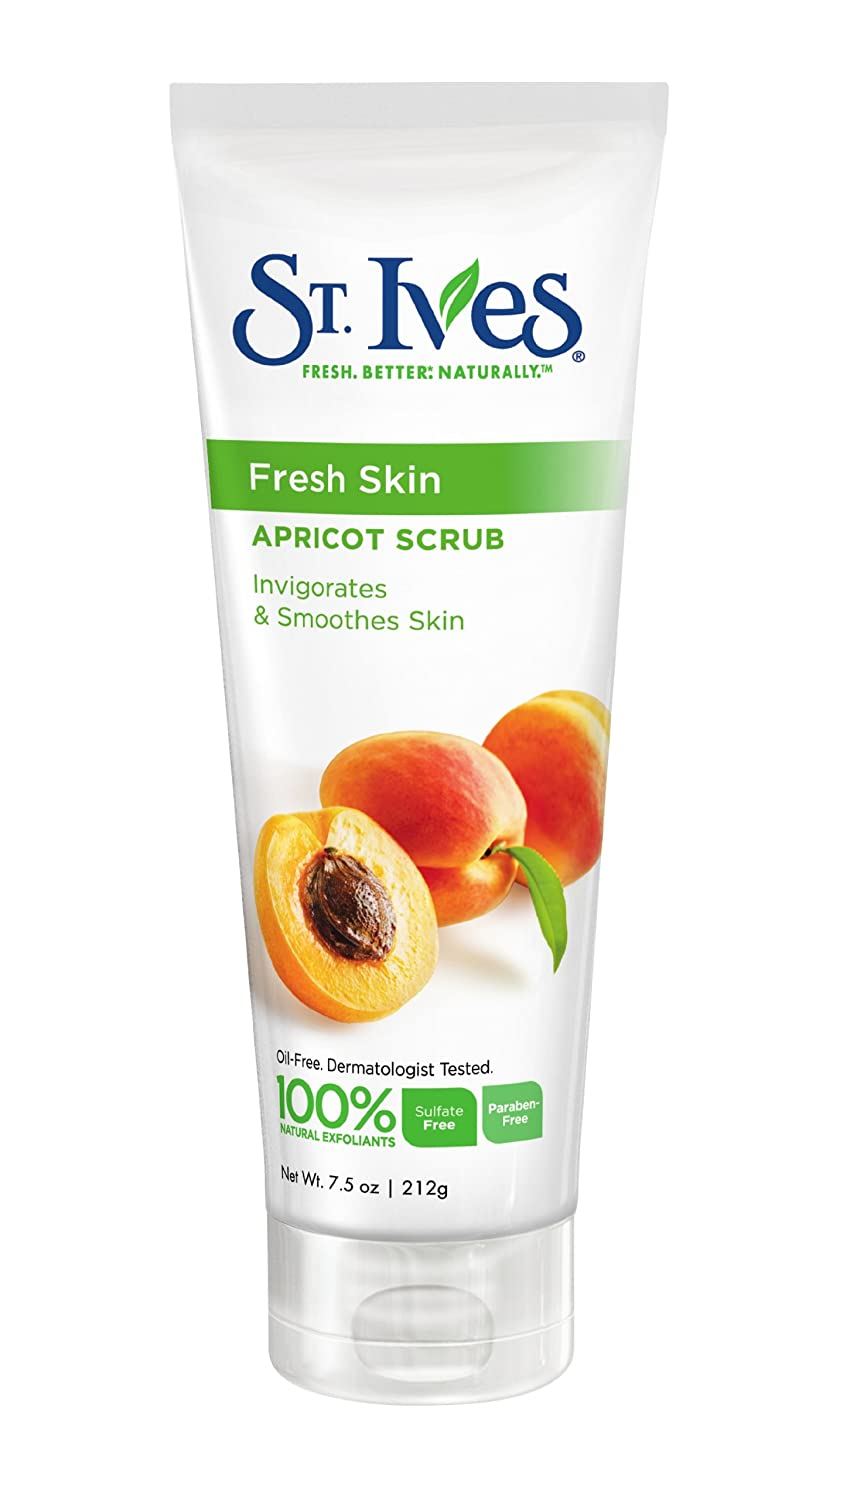 St. Ives Fresh Skin Invigorating Apricot Scrub $2.27 with $1 coupon